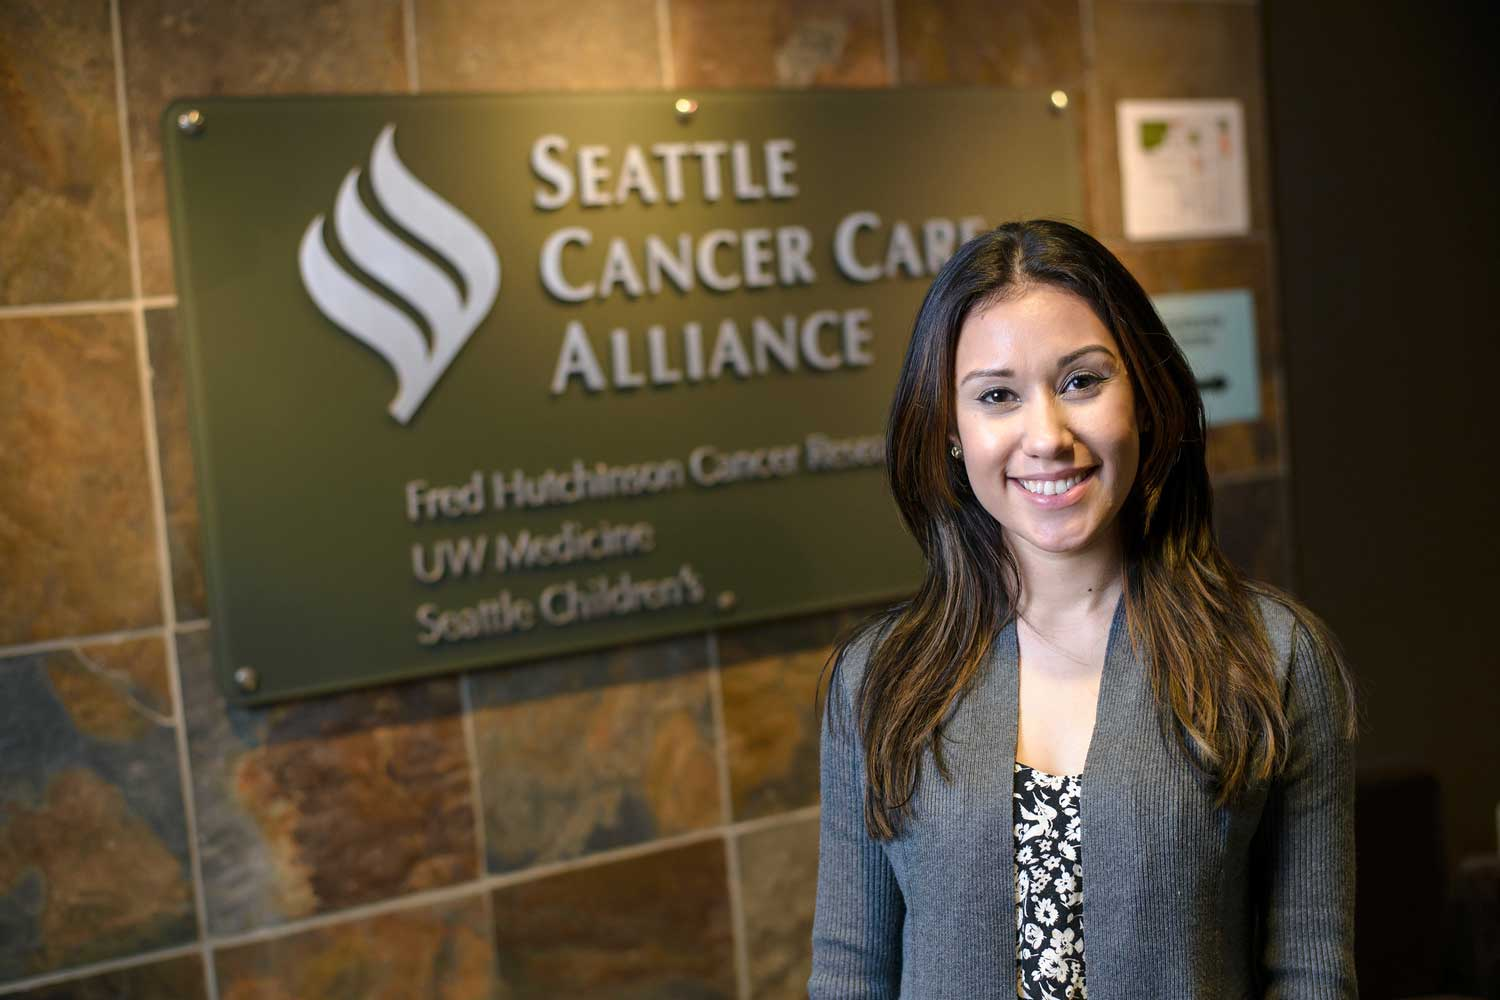 Yisel Navarro was an office worker for the Seattle Cancer Care Alliance